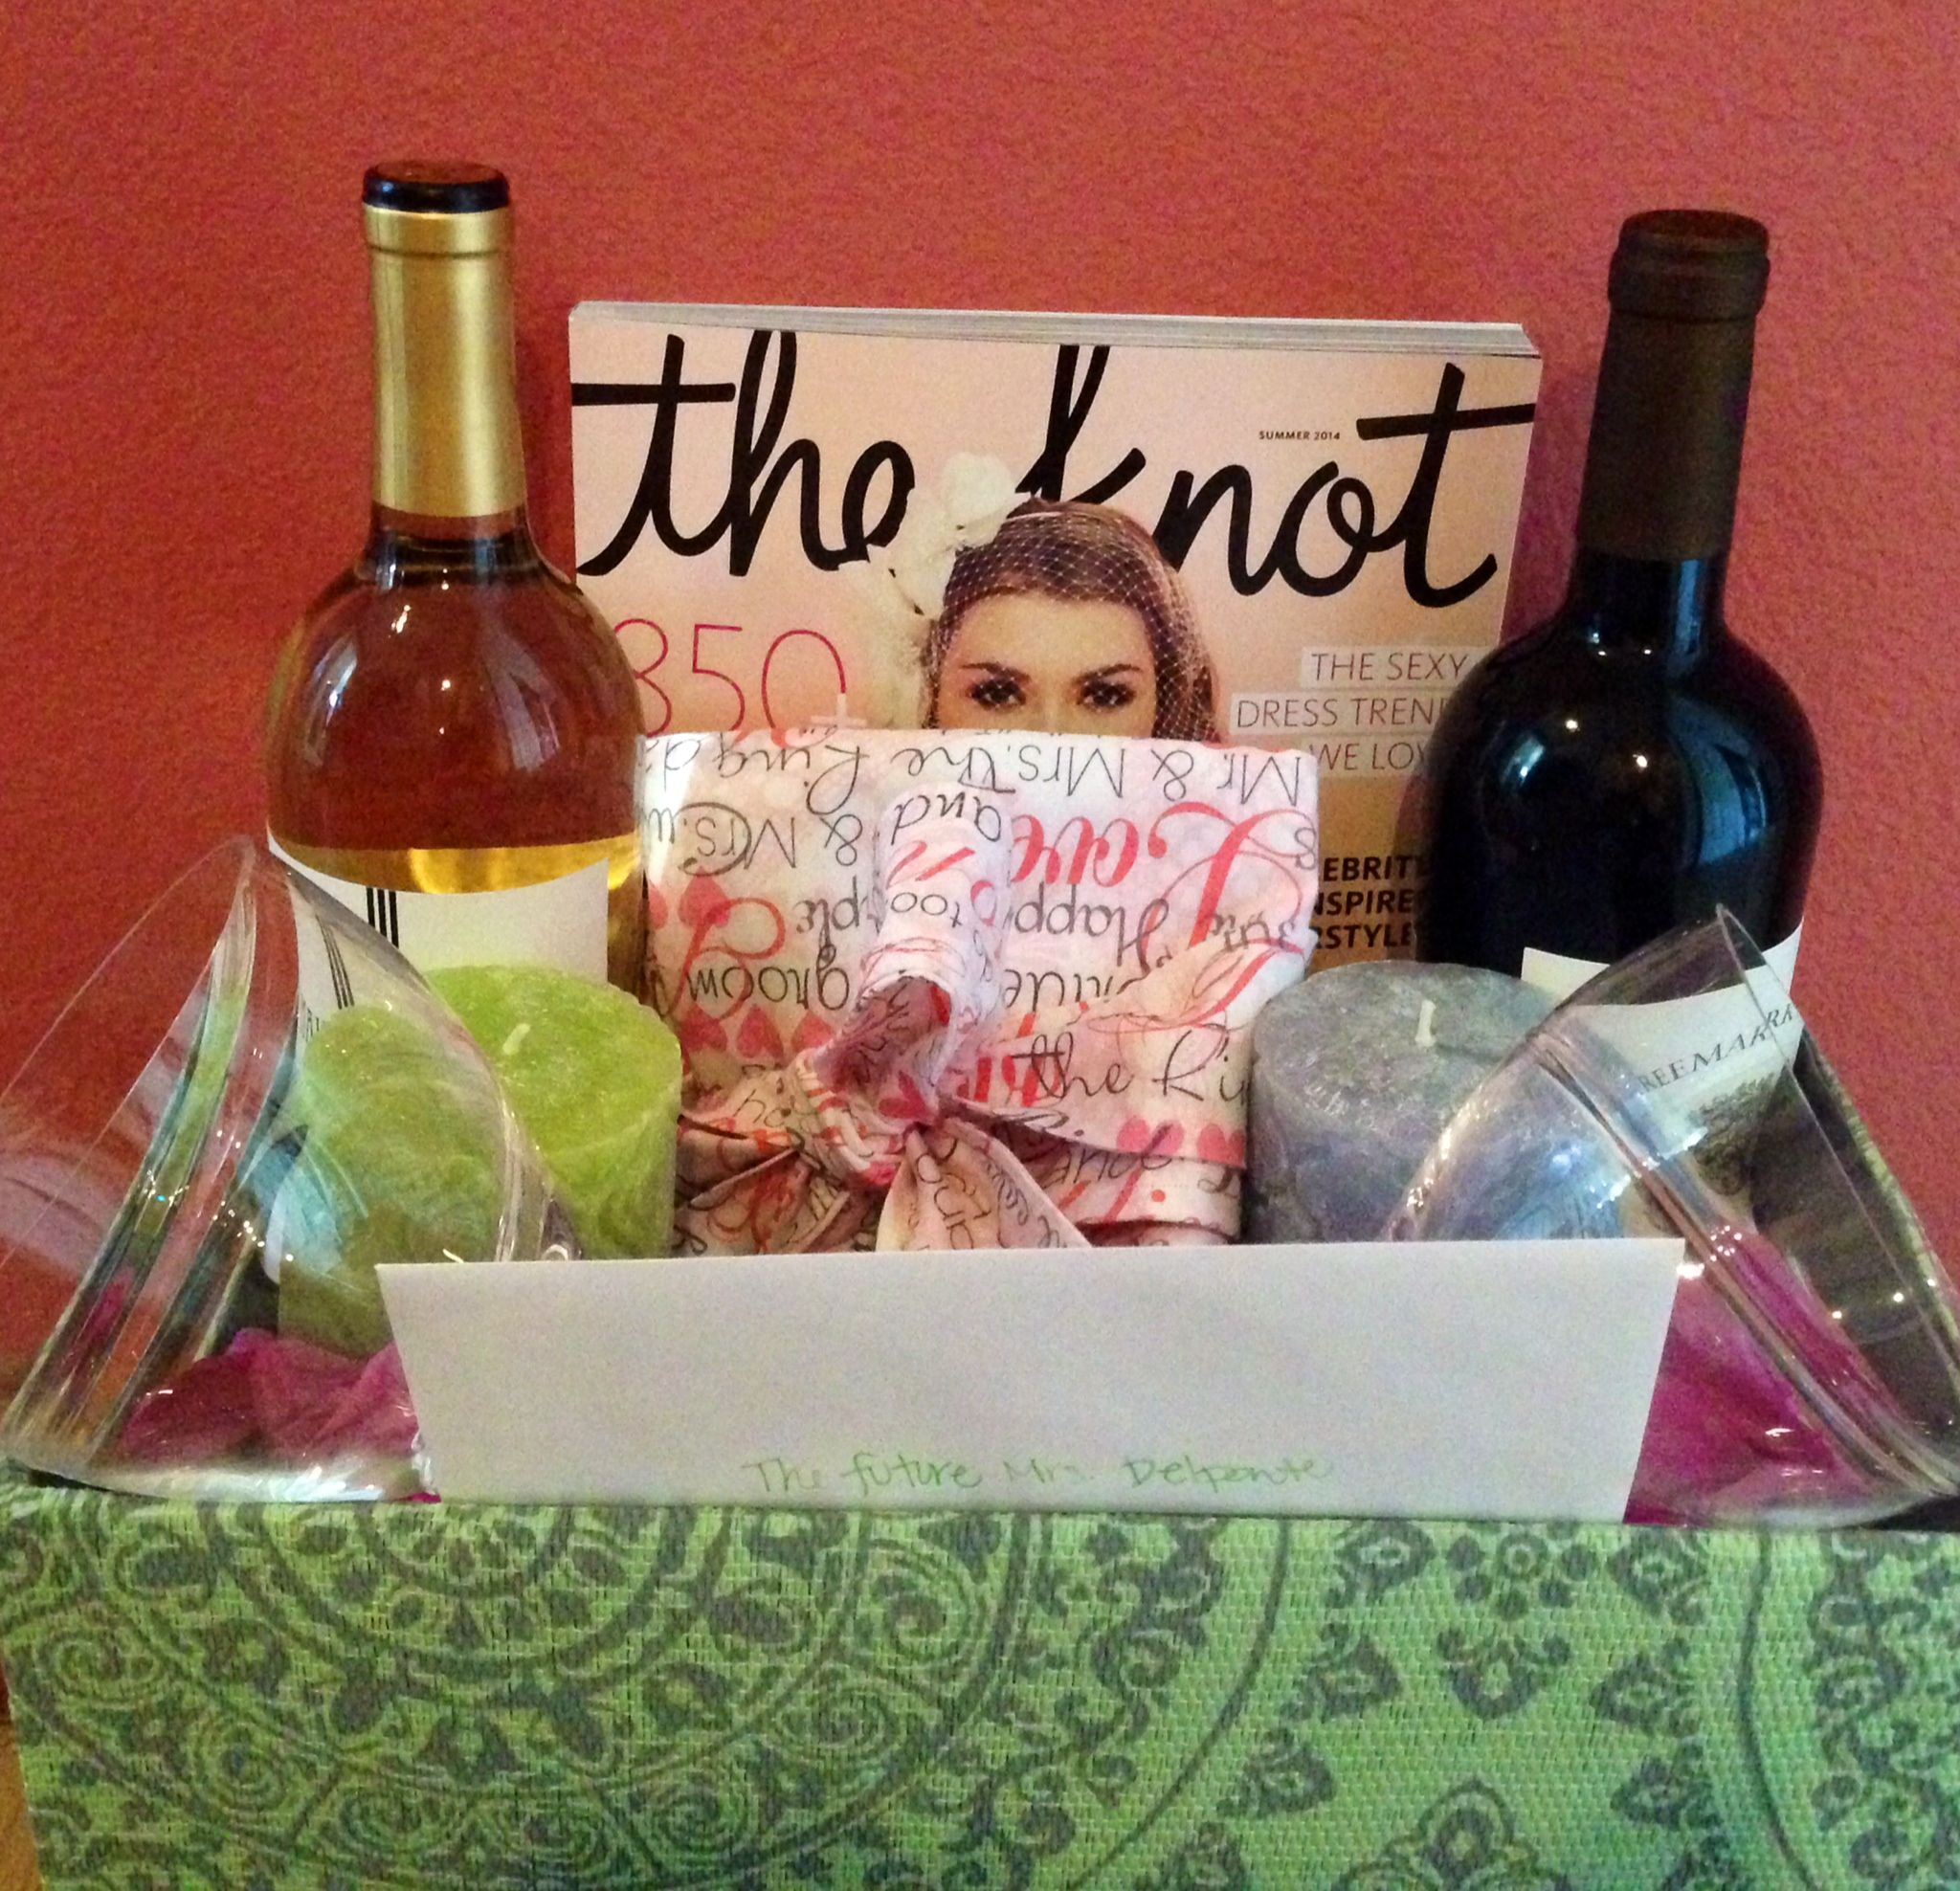 Congratulations On Your Engagement Basket! Candles, Wine